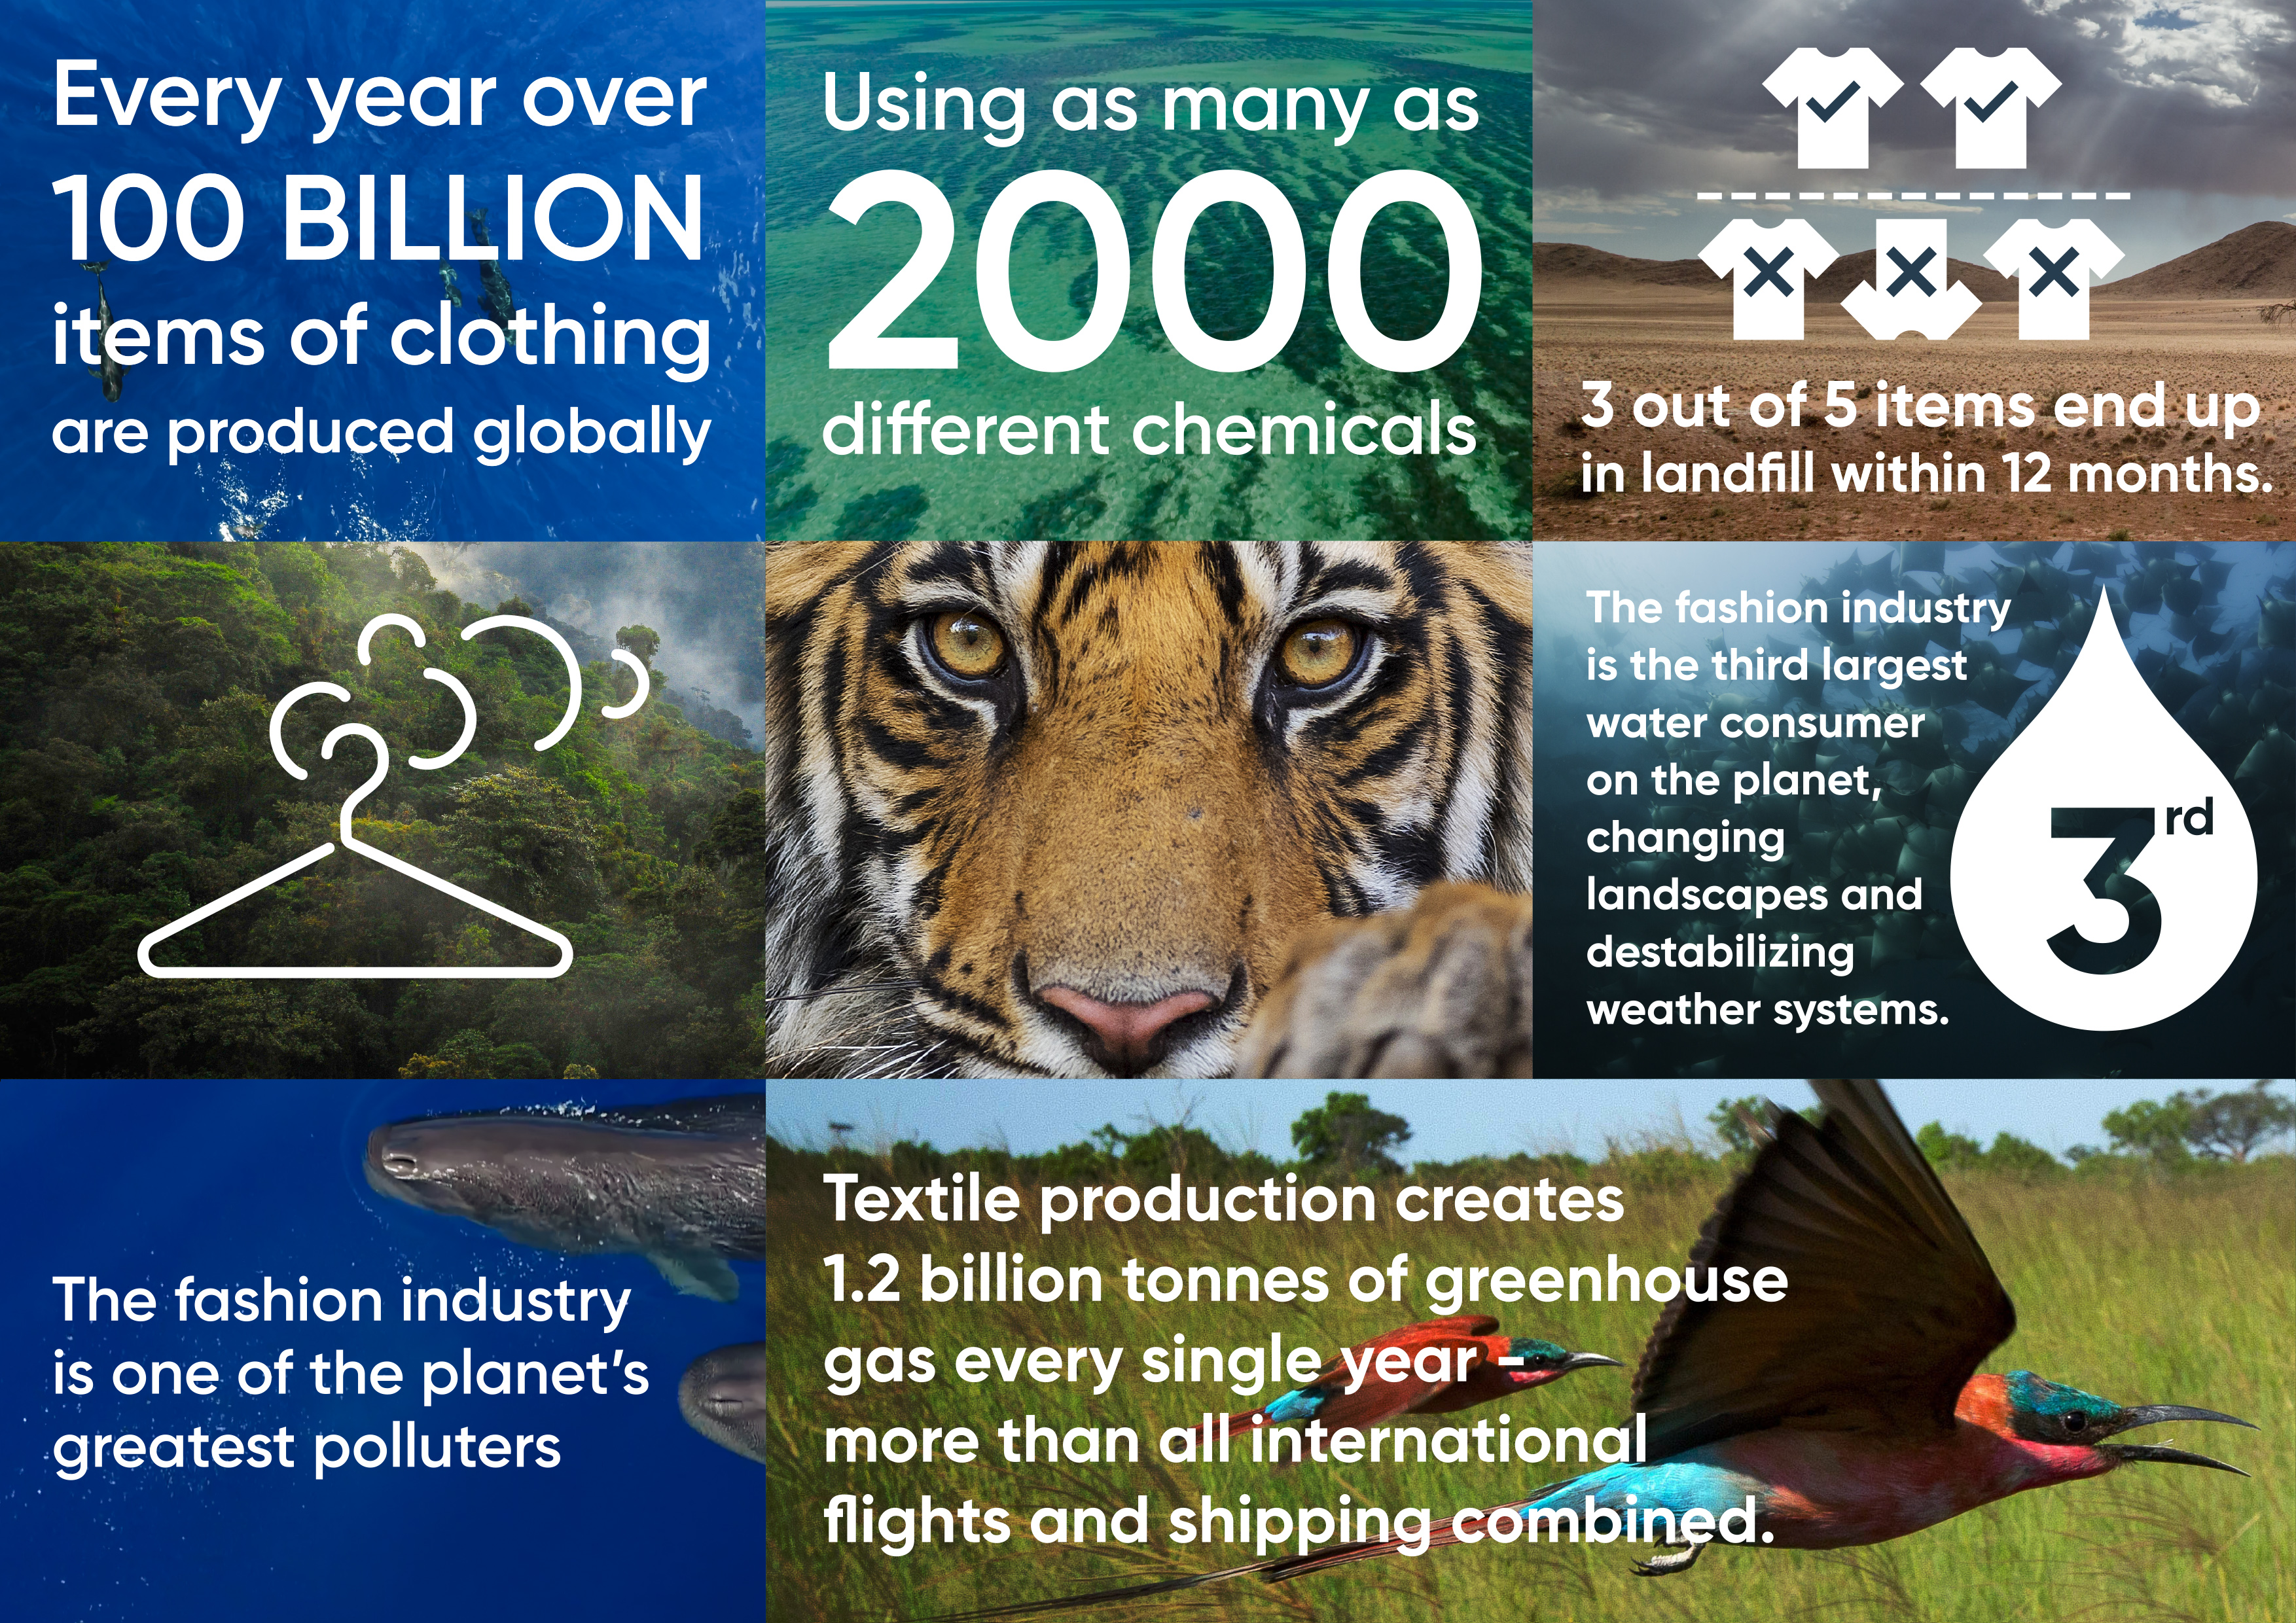 Fashion's impact on the environment